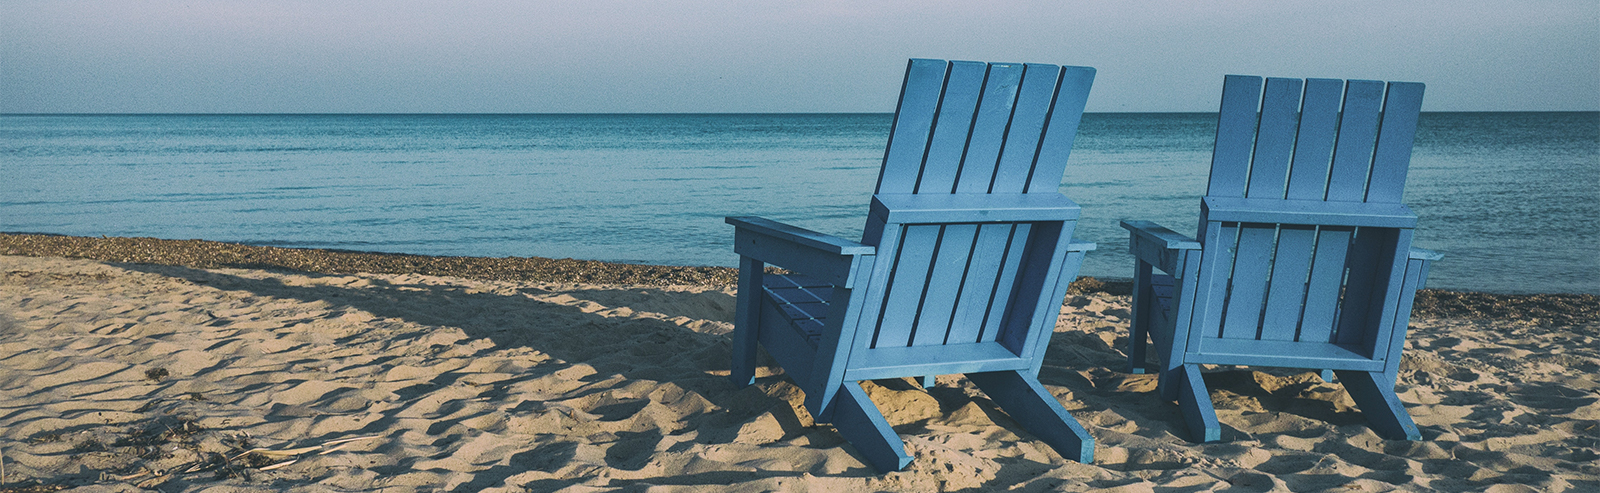 blue chairs sitting on a beach in front of the ocean